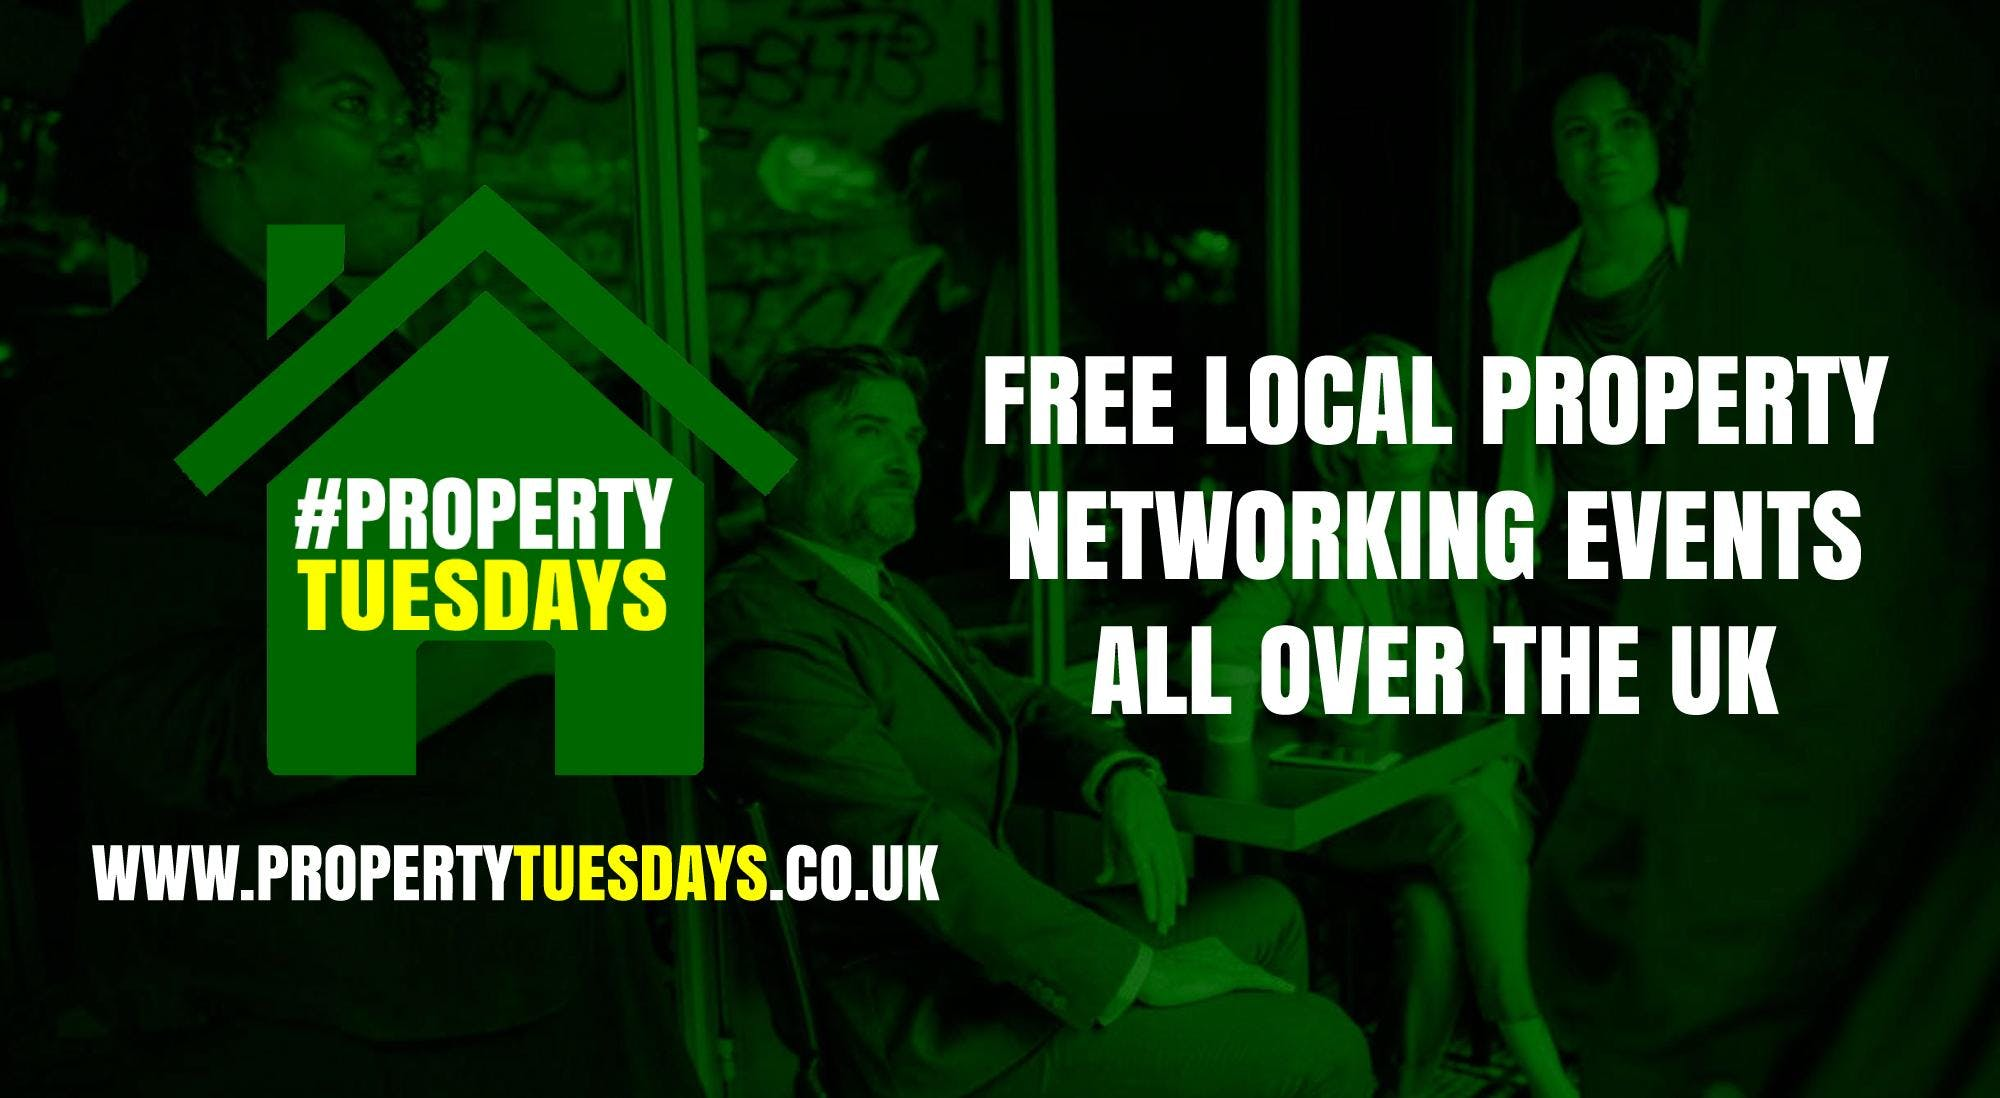 Property Tuesdays! Free property networking event in Sutton Coldfield